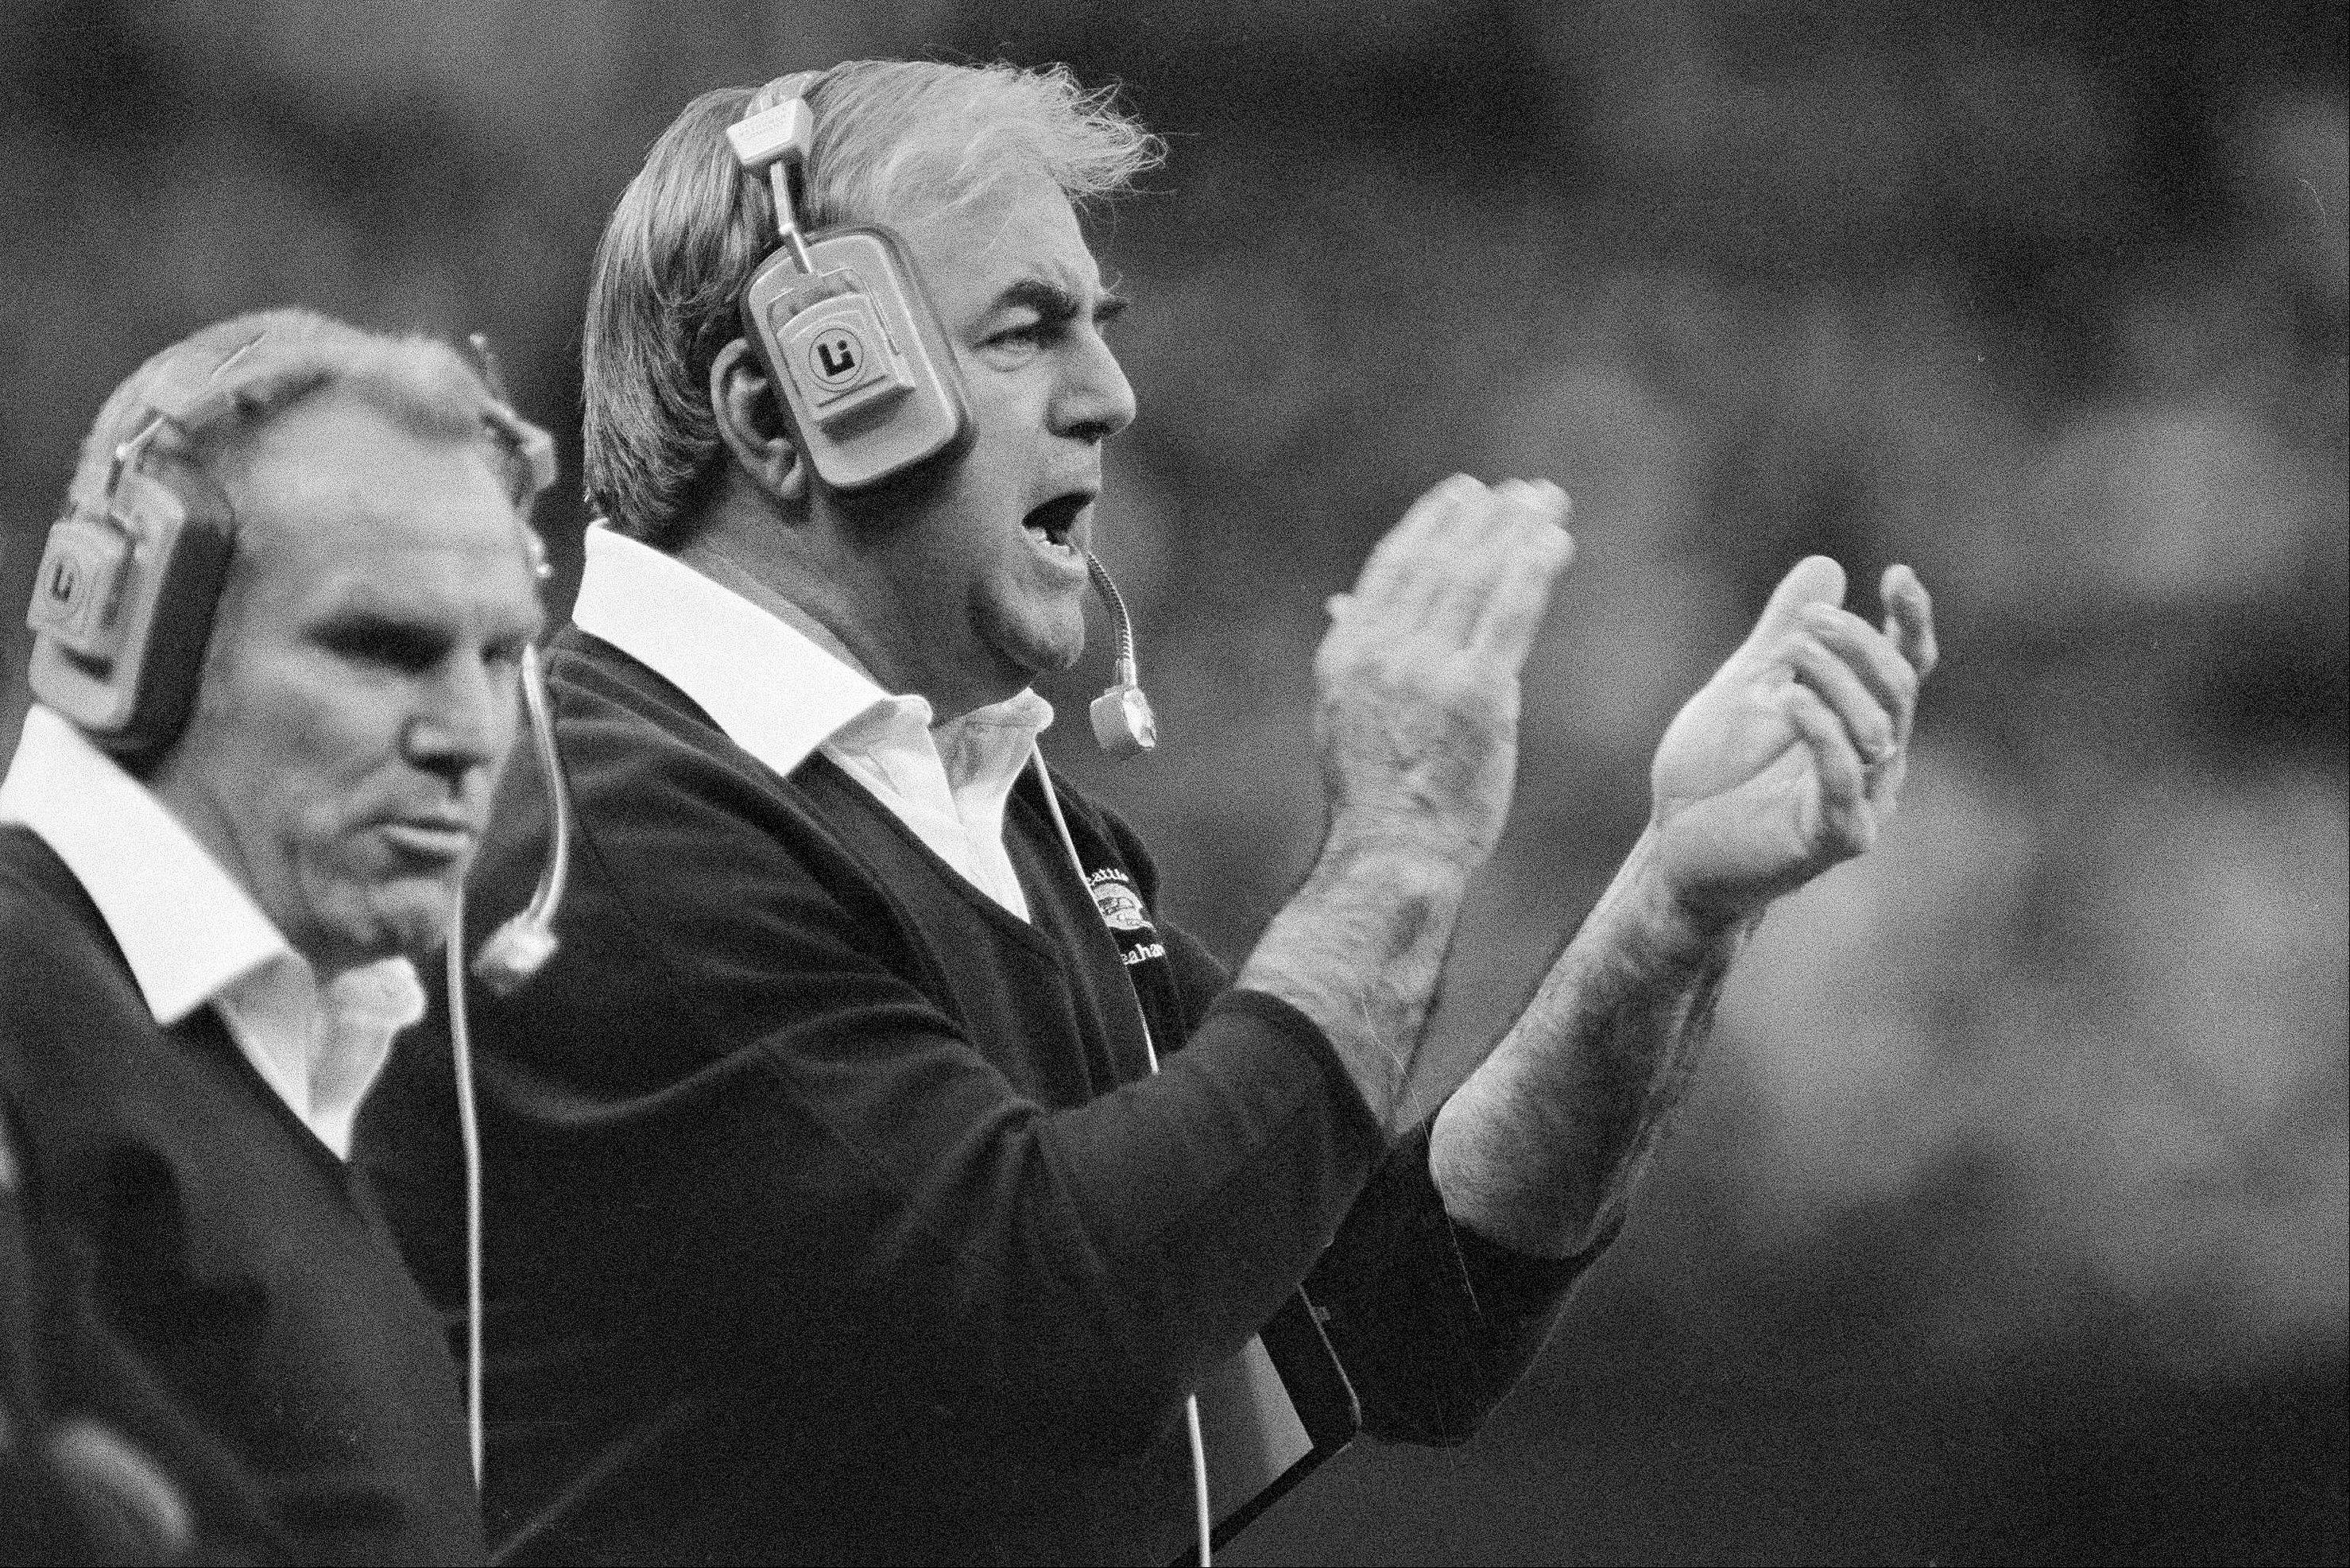 Seattle Seahawks head coach Mike McCormack claps his hands while shouting encouragement to his players during an NFL football game against the Chicago Bears in the Kingdome in Seattle.